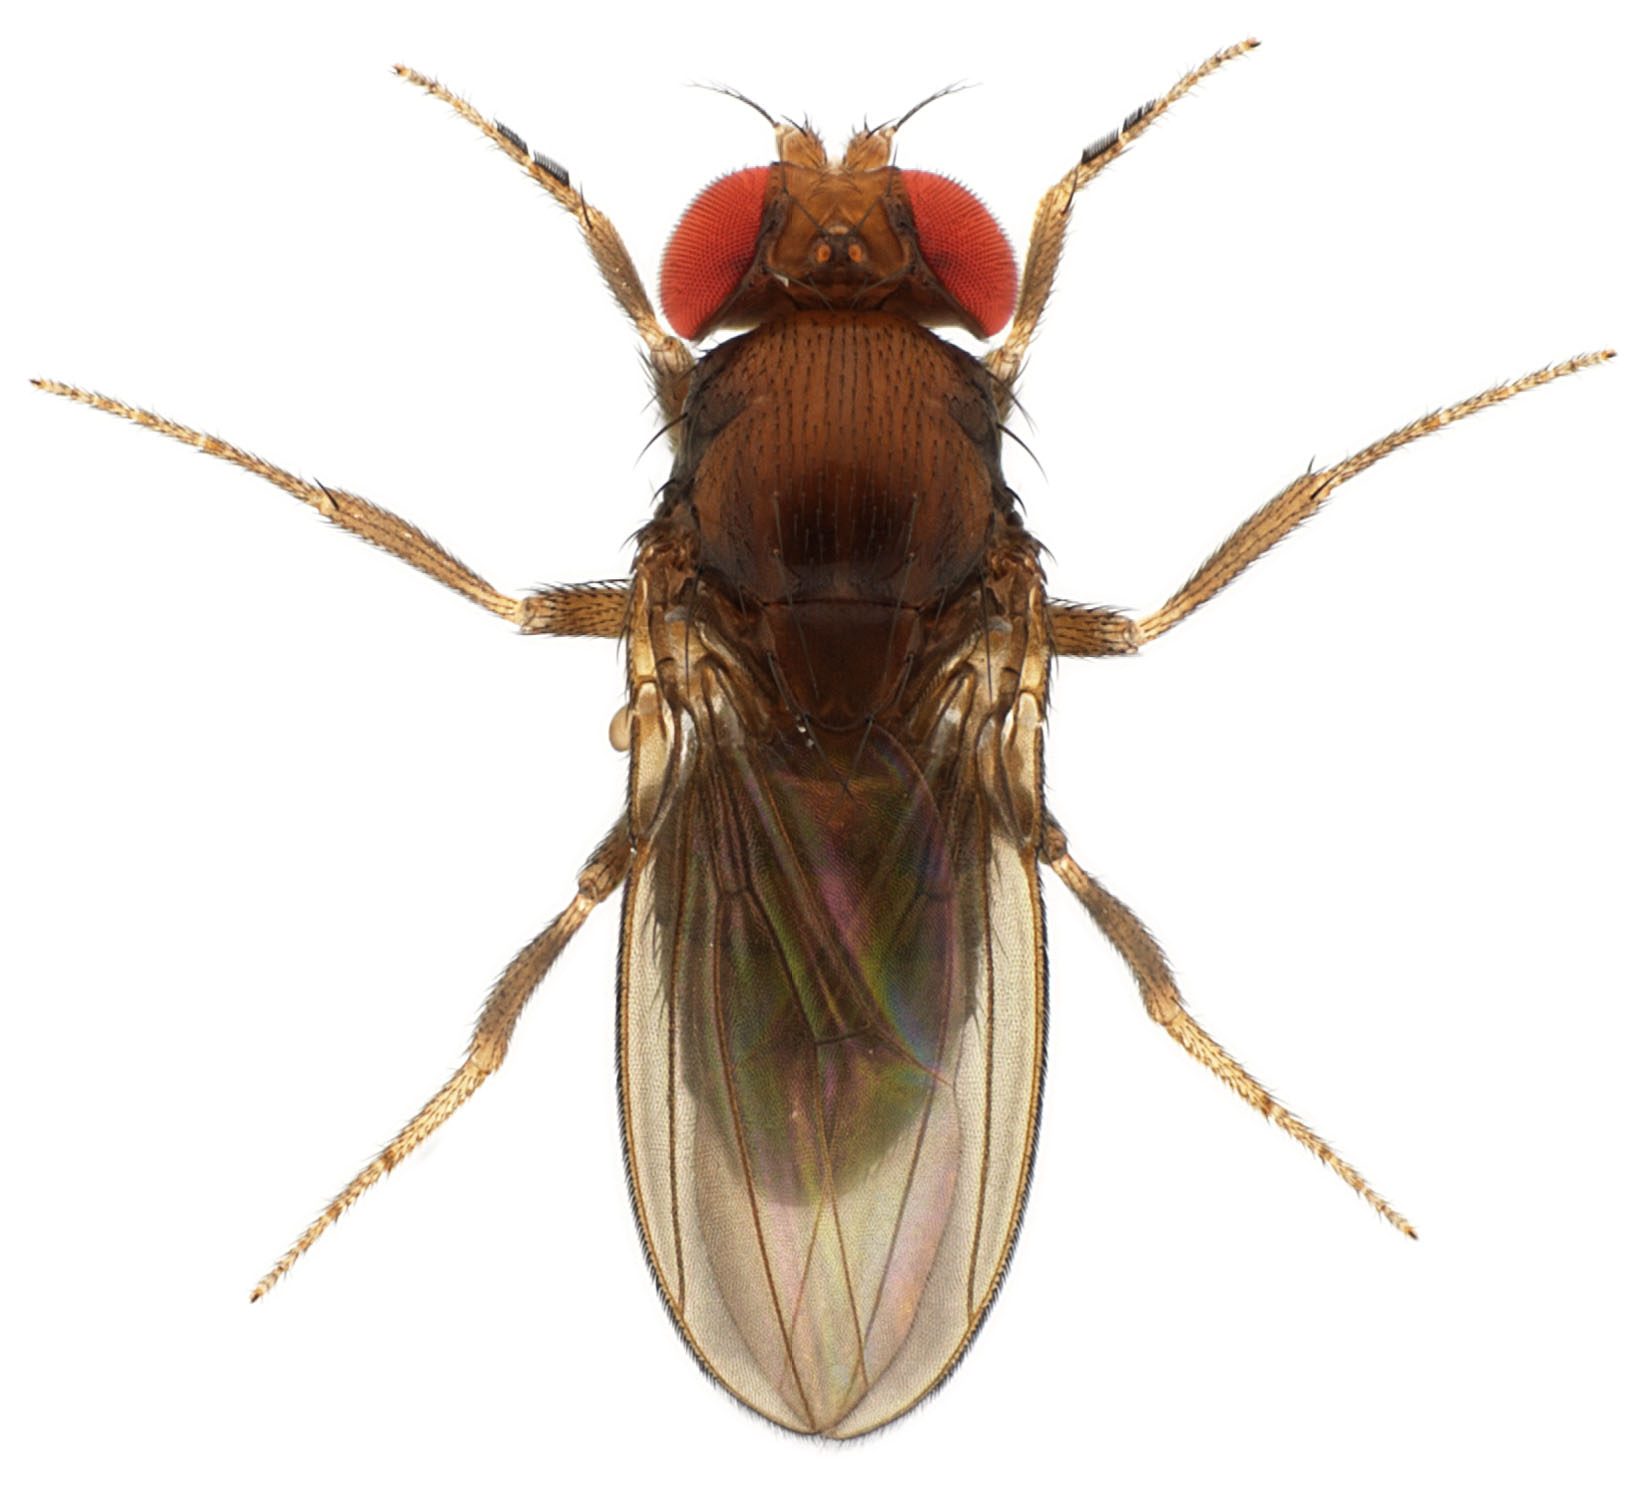 Drosophila rhopaloa KB866 male 1x10 dorsal-enhanced